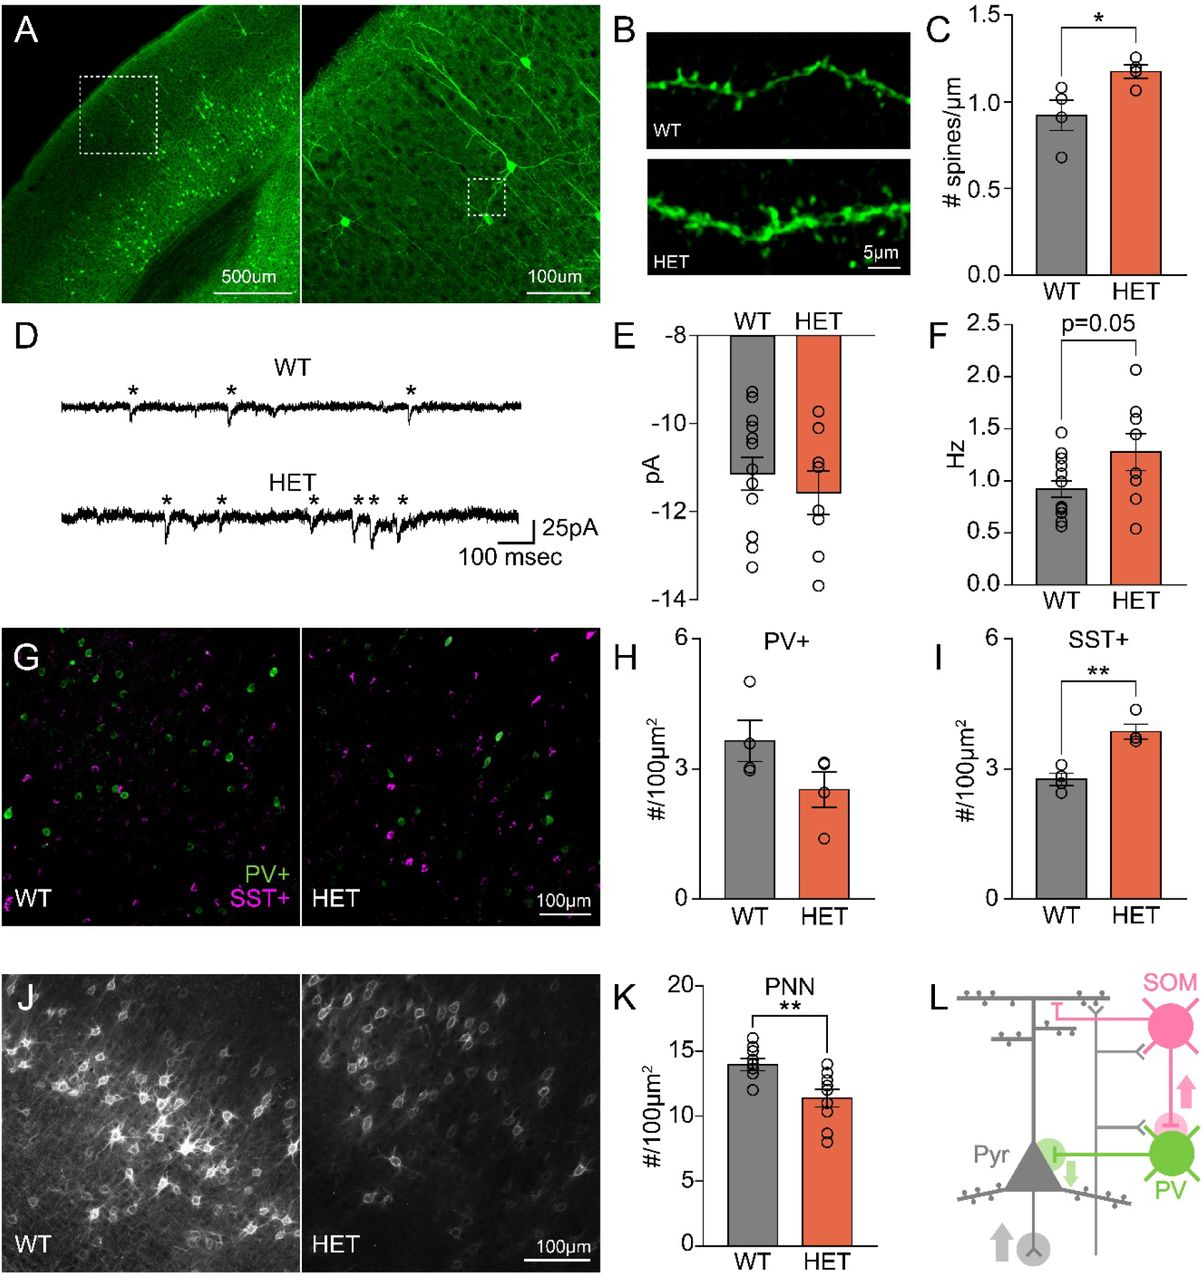 GLT1 HET mice have abnormal maturation of excitatory and inhibitory circuits. A) Left: low-magnification image of neurons in visual cortex of GFP-M transgenic mice. Right: higher-magnification image of layer 2/3 neurons (dotted box in left). B) Images of basal dendrites of layer 2/3 neurons in GLT1 WT (top) and HET (bottom) mice. WT example is from dotted box in right panel of A. C) GLT1 HET mice have increased spine density on basal dendrites of layer 2/3 neurons in visual cortex (n=4 animals, 5 slices, 10 dendrites per animal, t-test, p=0.041). D) Example traces of miniature excitatory post-synaptic currents (mEPSCs) from voltage-clamped layer 2/3 neurons in the visual cortex of GLT1 WT and HET mice. E) Quantification of mEPSC amplitude showing no difference in magnitude of mEPSCs (n=8-13 cell, t-test, p=0.49). F) Neurons from GLT1 HET mice have a trend towards increased mEPSC frequency (n=8-13 cells, t-test, p=0.052). G) Example images of parvalbumin positive (PV+, green) and somatostatin positive (SST+, magenta) interneurons in visual cortex of GLT1 WT and HET mice). H) GLT1 HET mice have a trend towards decreased PV+ neuron density (n=4 animals, 5 slices per animal, t-test, p=0.12). I) GLT1 HET mice have a significant increase in SST+ cell density (n=4 animals, 5 slices per animal, t-test, p=0.0023). J) Example images of perineuronal nets (PNNs) visualized using wisteria floribunda agglutin (WFA) staining. K) GLT1 HET mice have significantly decreased PNN density compared to WT littermates (n=9 animals, 5 slices per animal, t-test, p=0.0068). L) Model of net decrease in cortical inhibition through increased SST+ cell density inhibiting PV+ interneurons yielding increase in excitatory pyramidal neuron responses (Pyr). *p